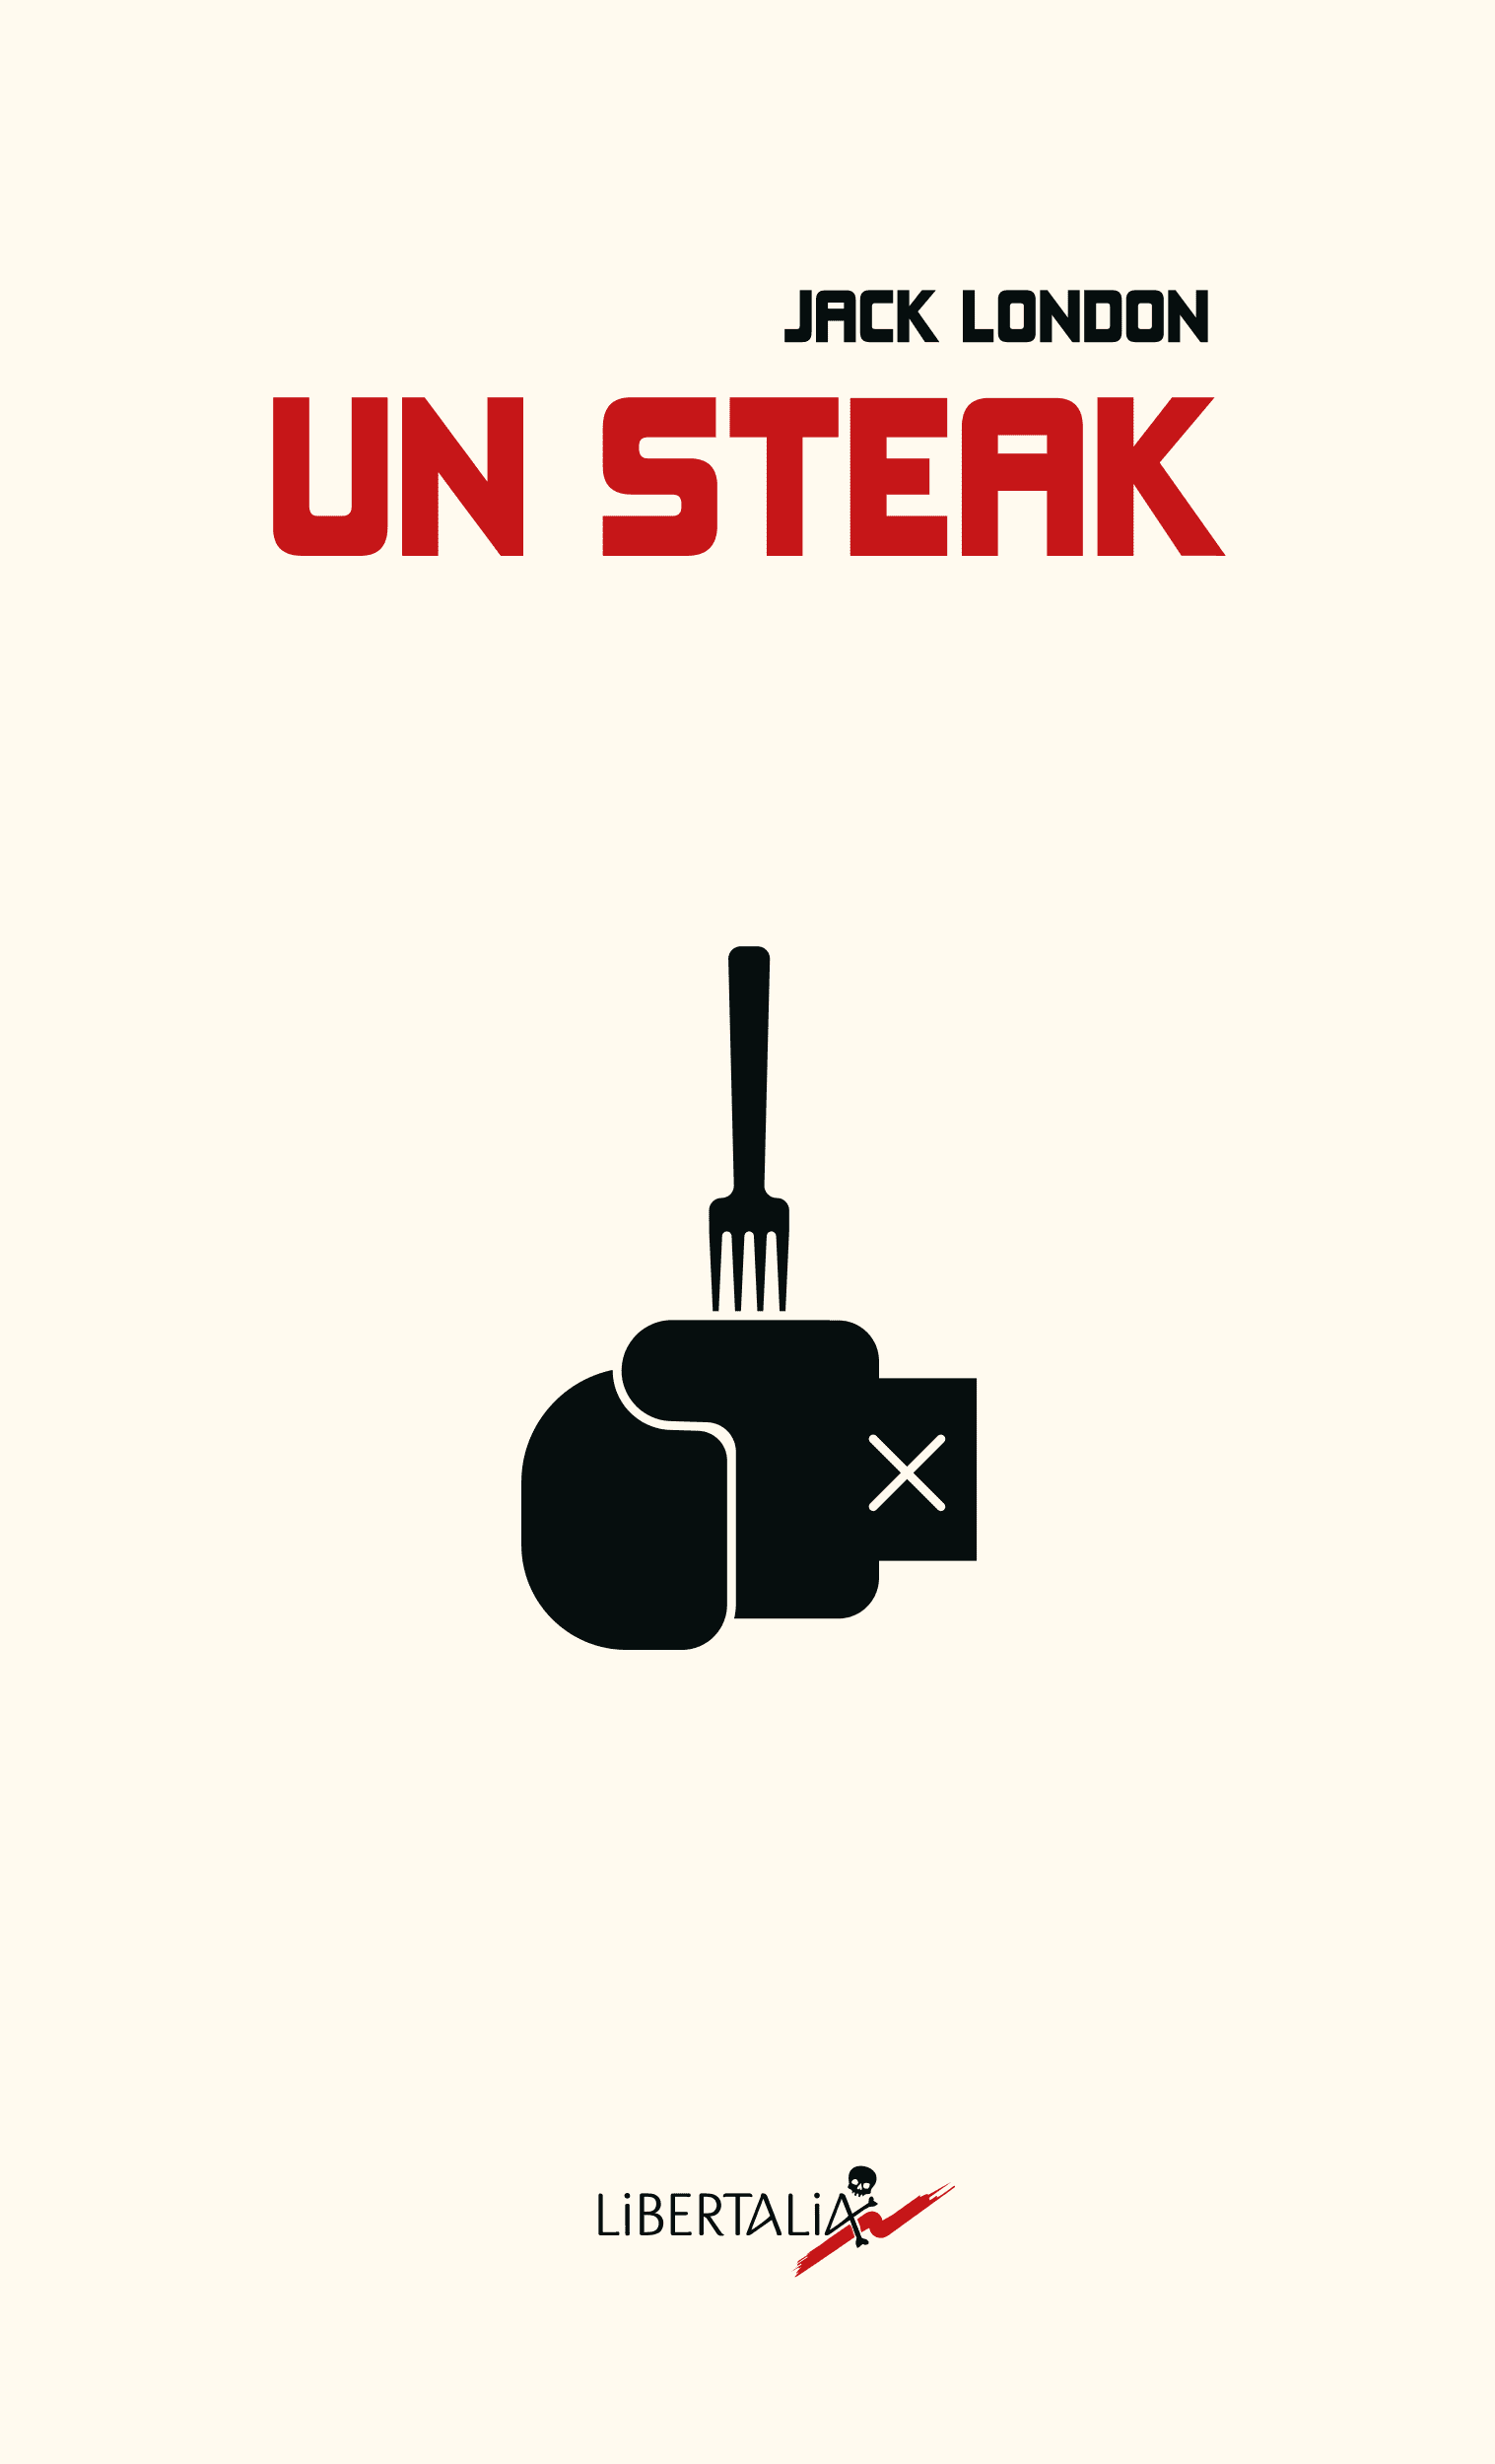 Un steak par Bruno Bartkowiak, graphiste illustrateur en Ariège, Occitanie.